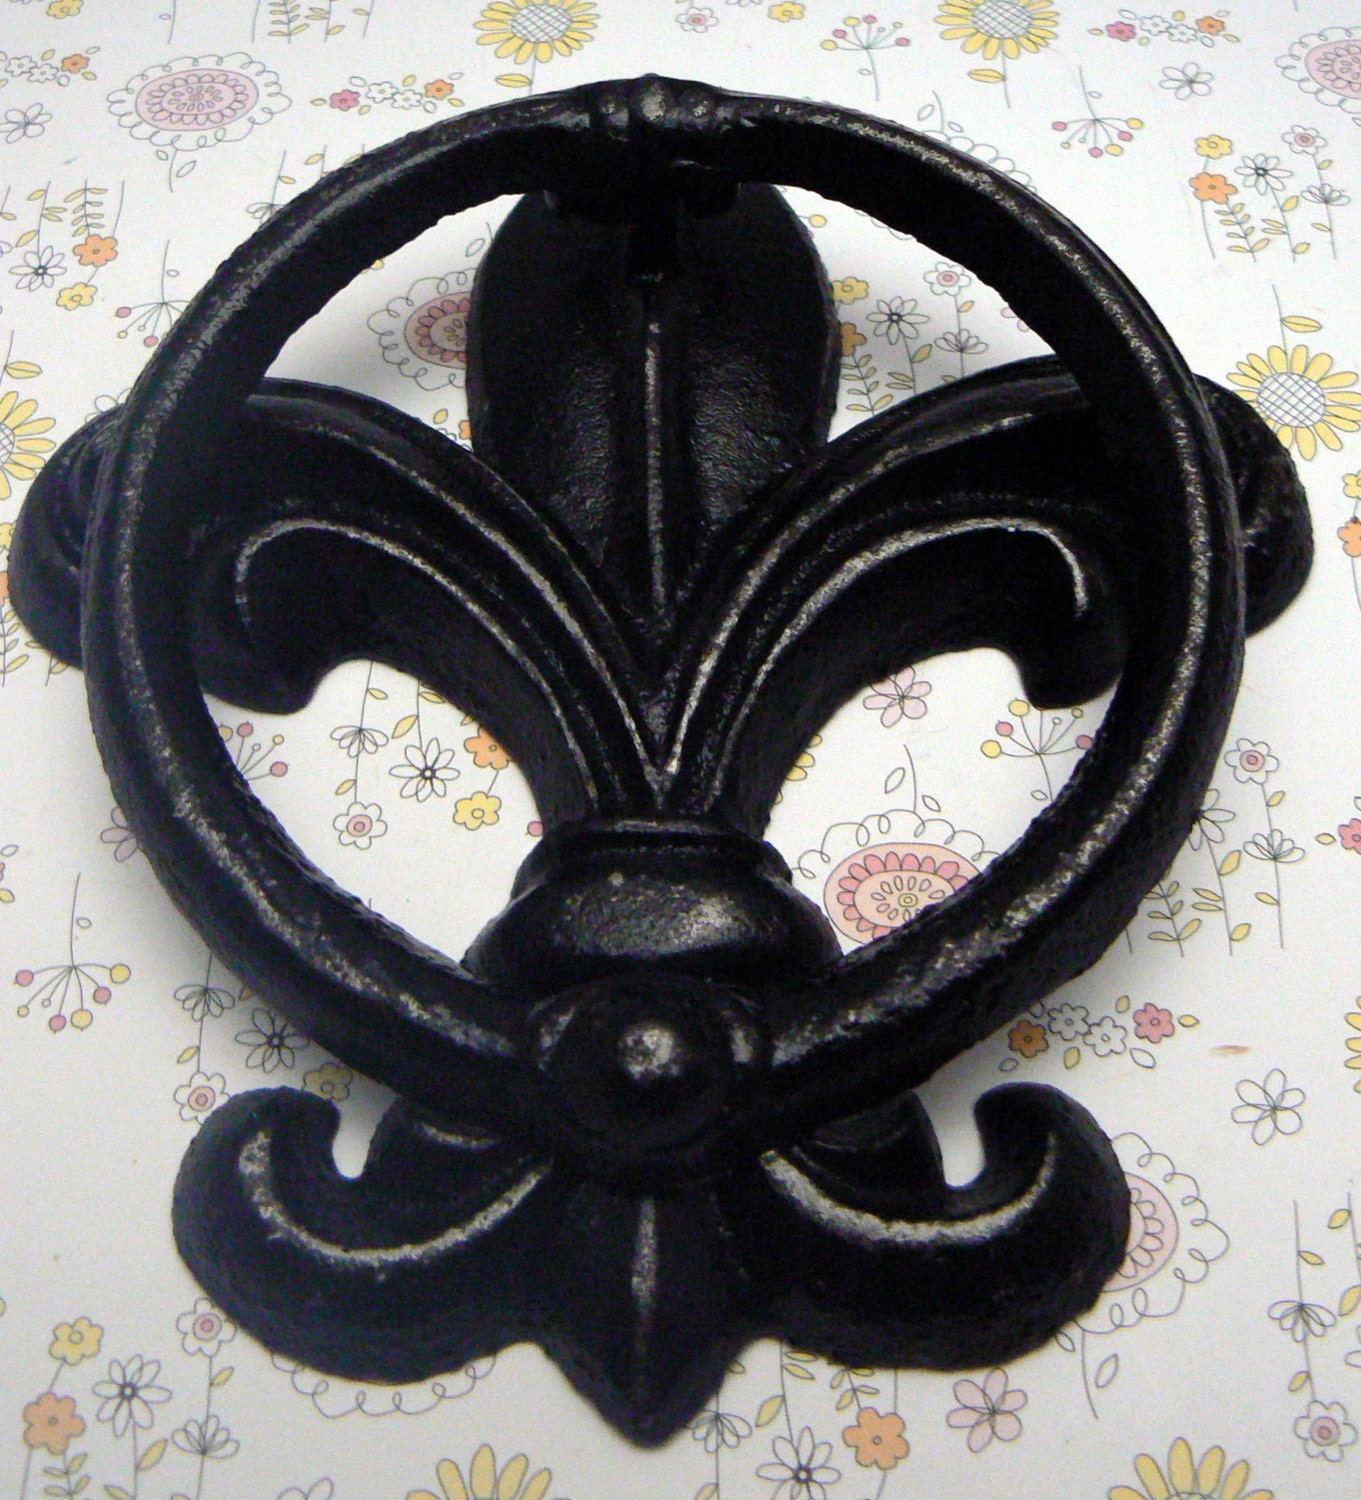 Fleur De Lis Cast Iron Shabby Chic Black FDL Welcome Door Knocker Home  Decor. Gallery Photo Gallery Photo ...